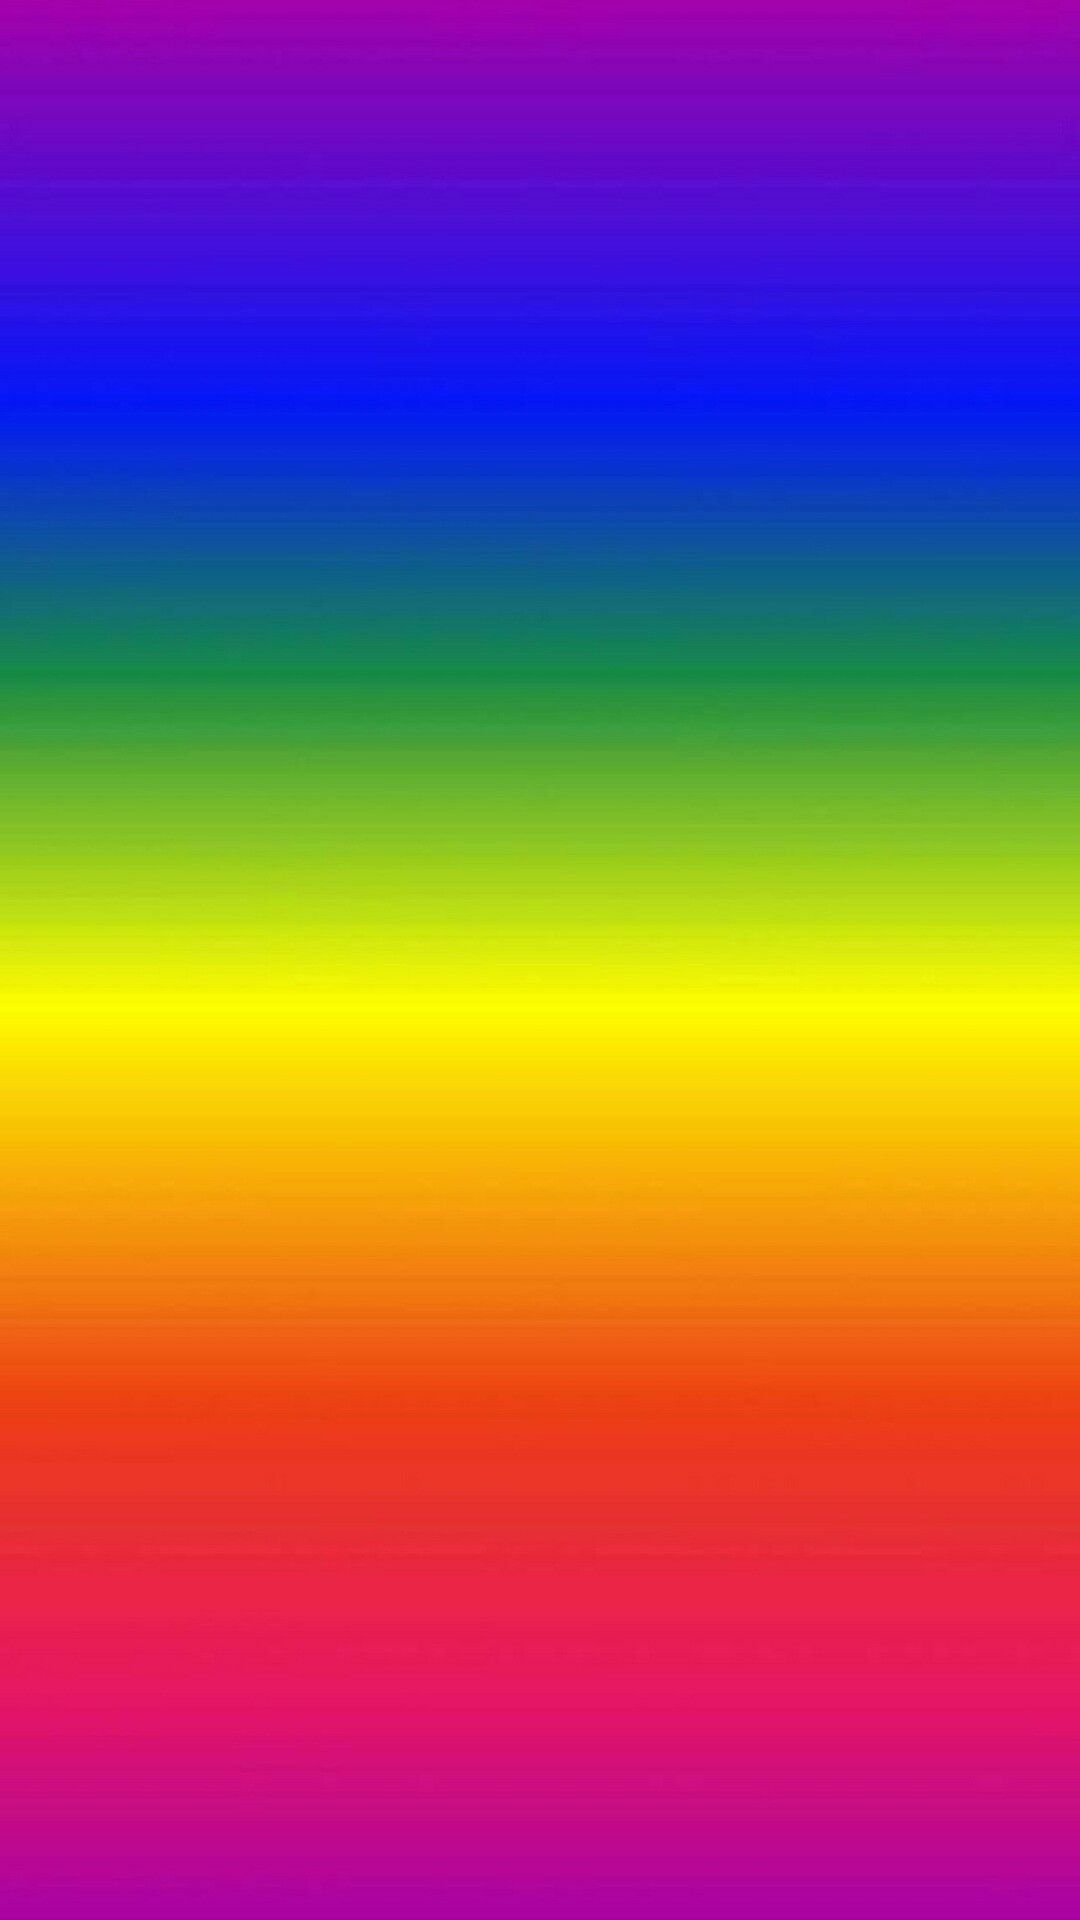 Faded Rainbow Rainbow Wallpaper Aura Colors Colorful Wallpaper